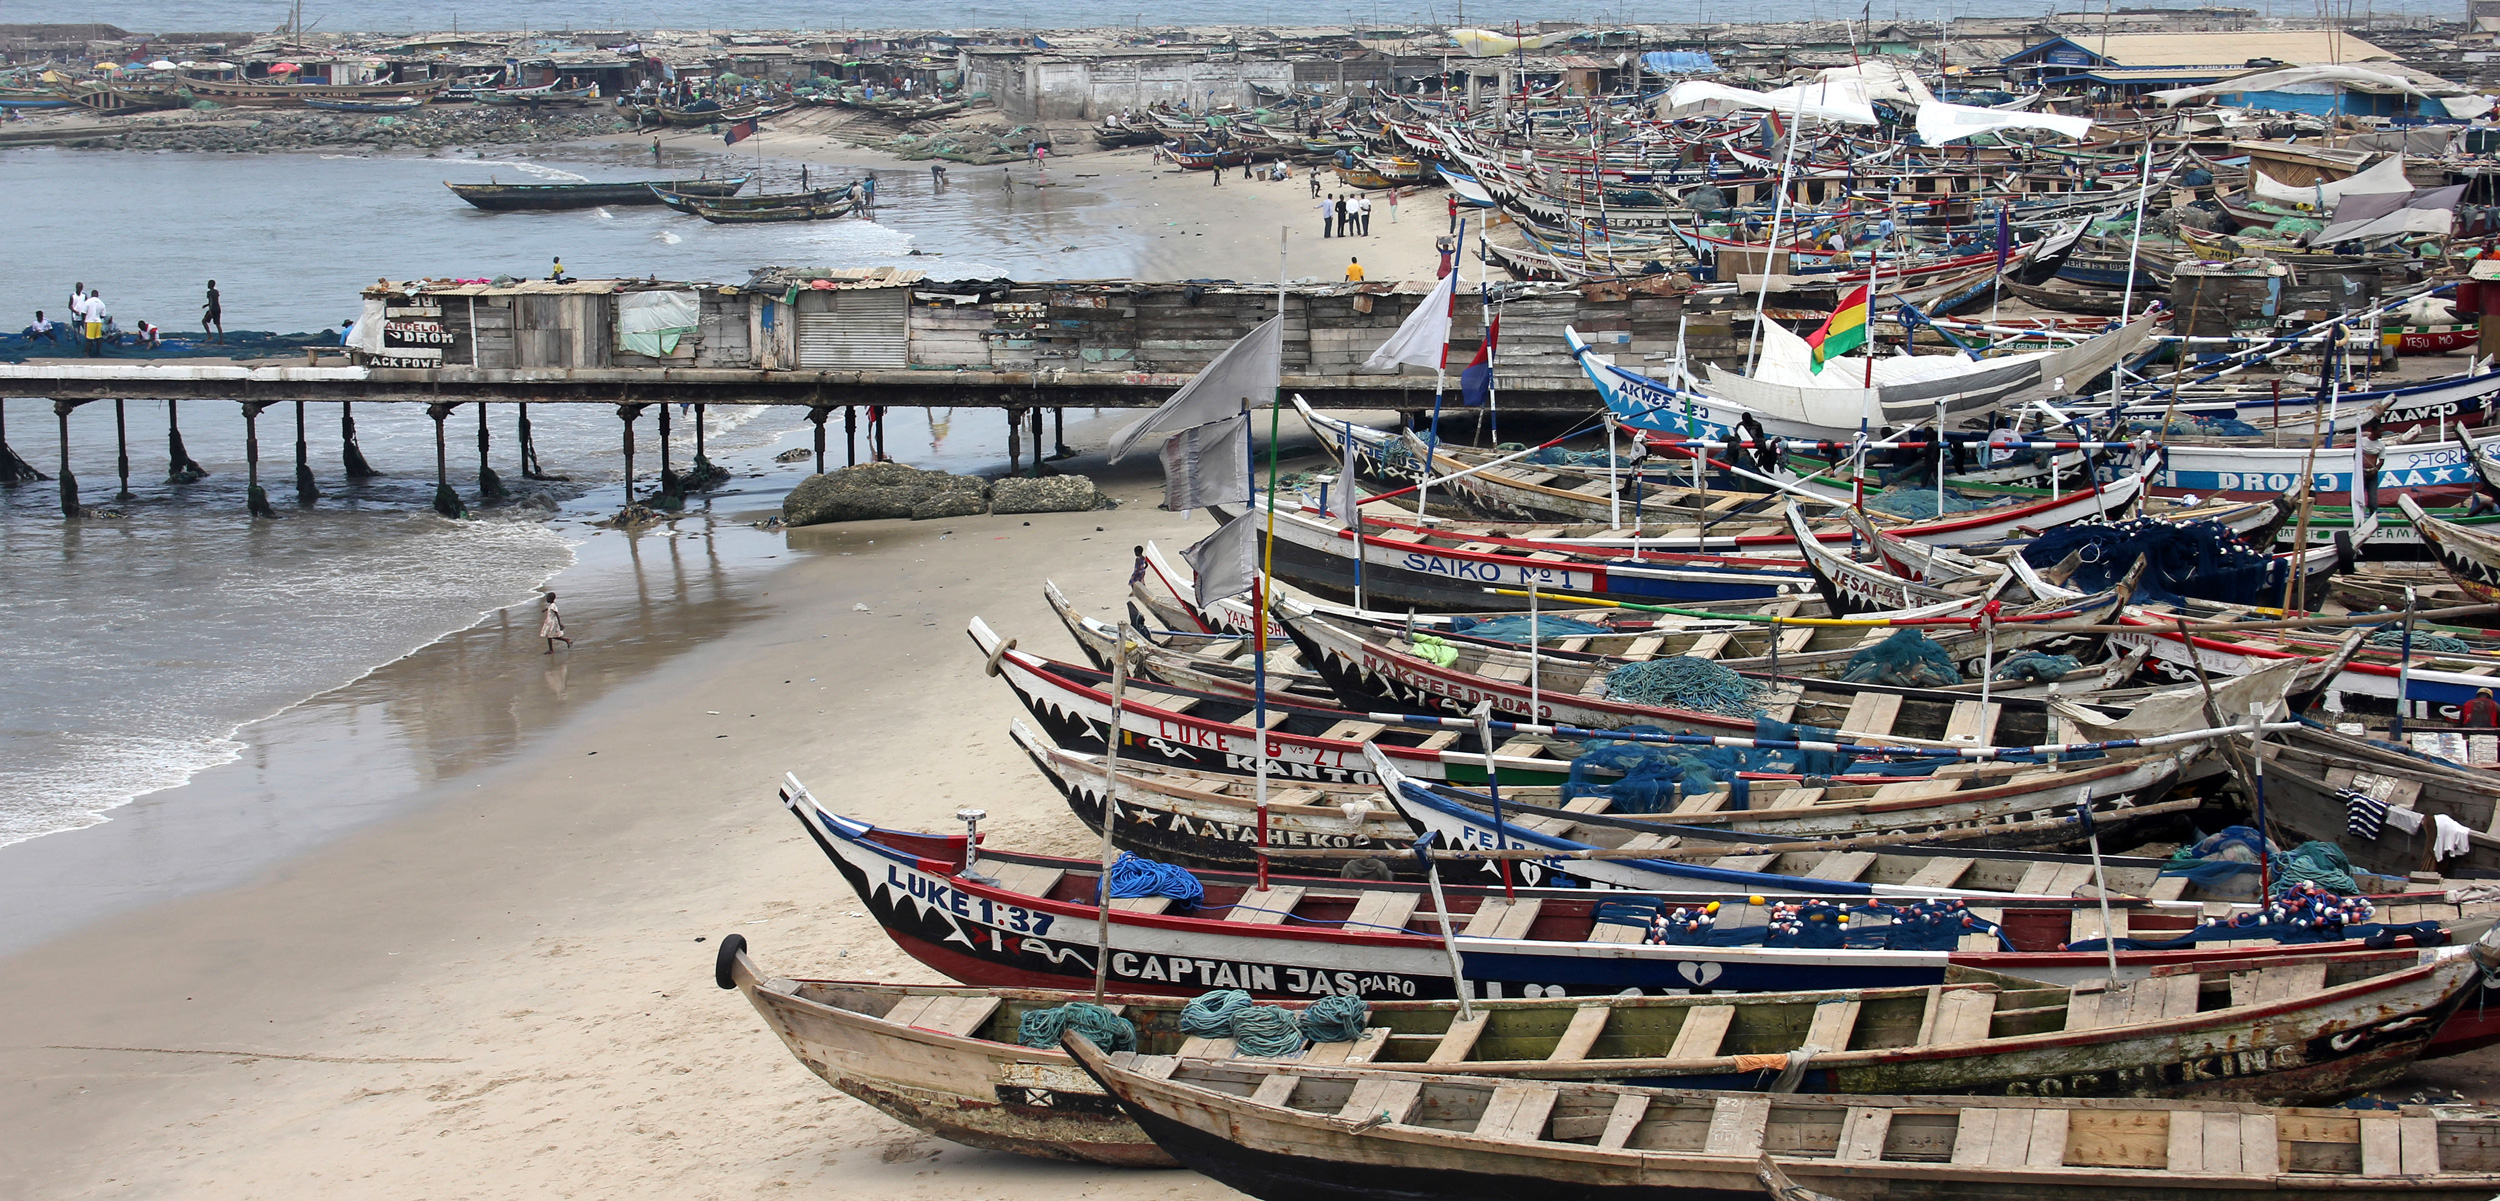 In West Africa, millions of fishers—both industrial and artisanal—are competing for a slice of the catch. Photo by Sabena Jane Blackbird/Alamy Stock Photo